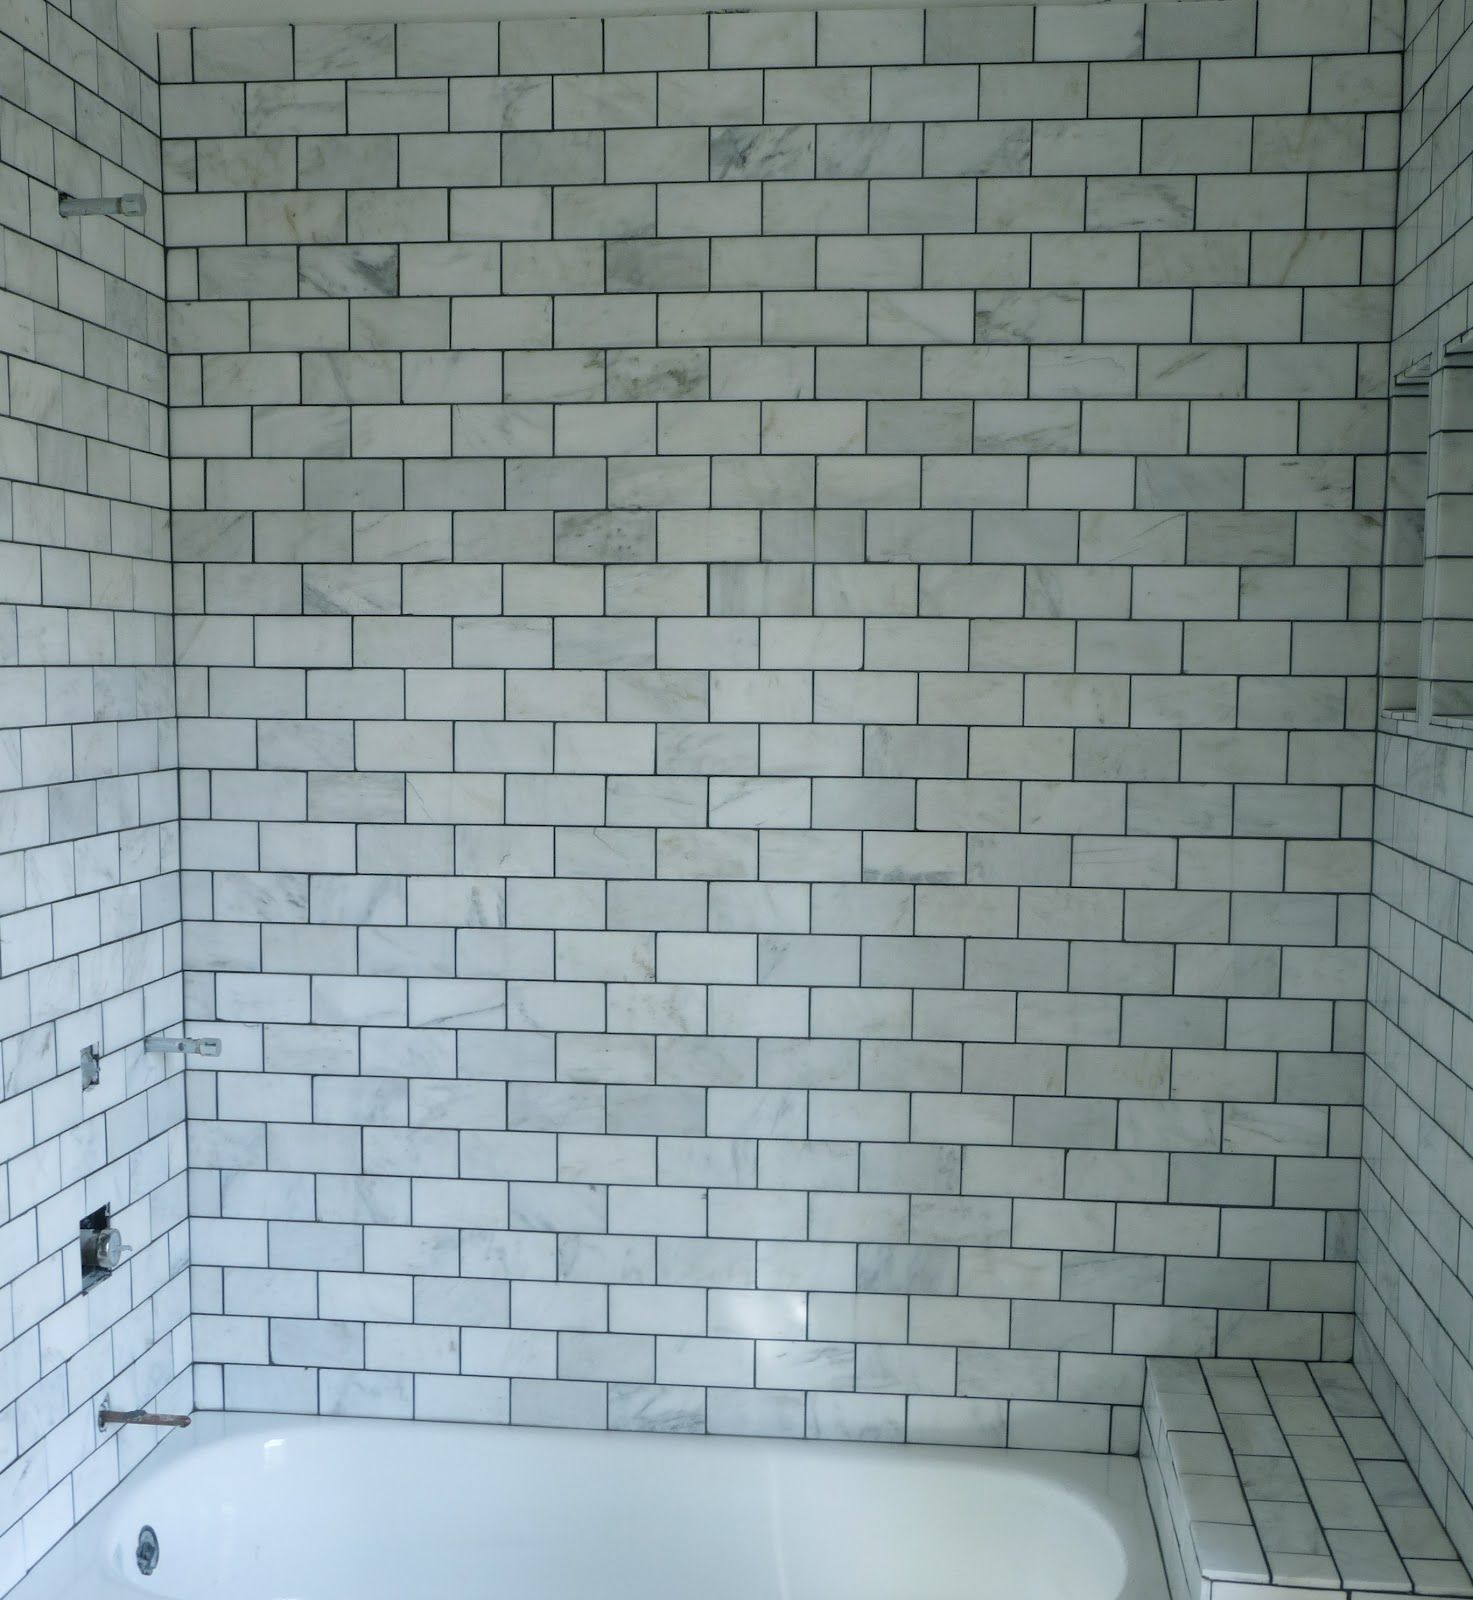 Representation Of Marble Subway Tile Shower Offering The Sense Of